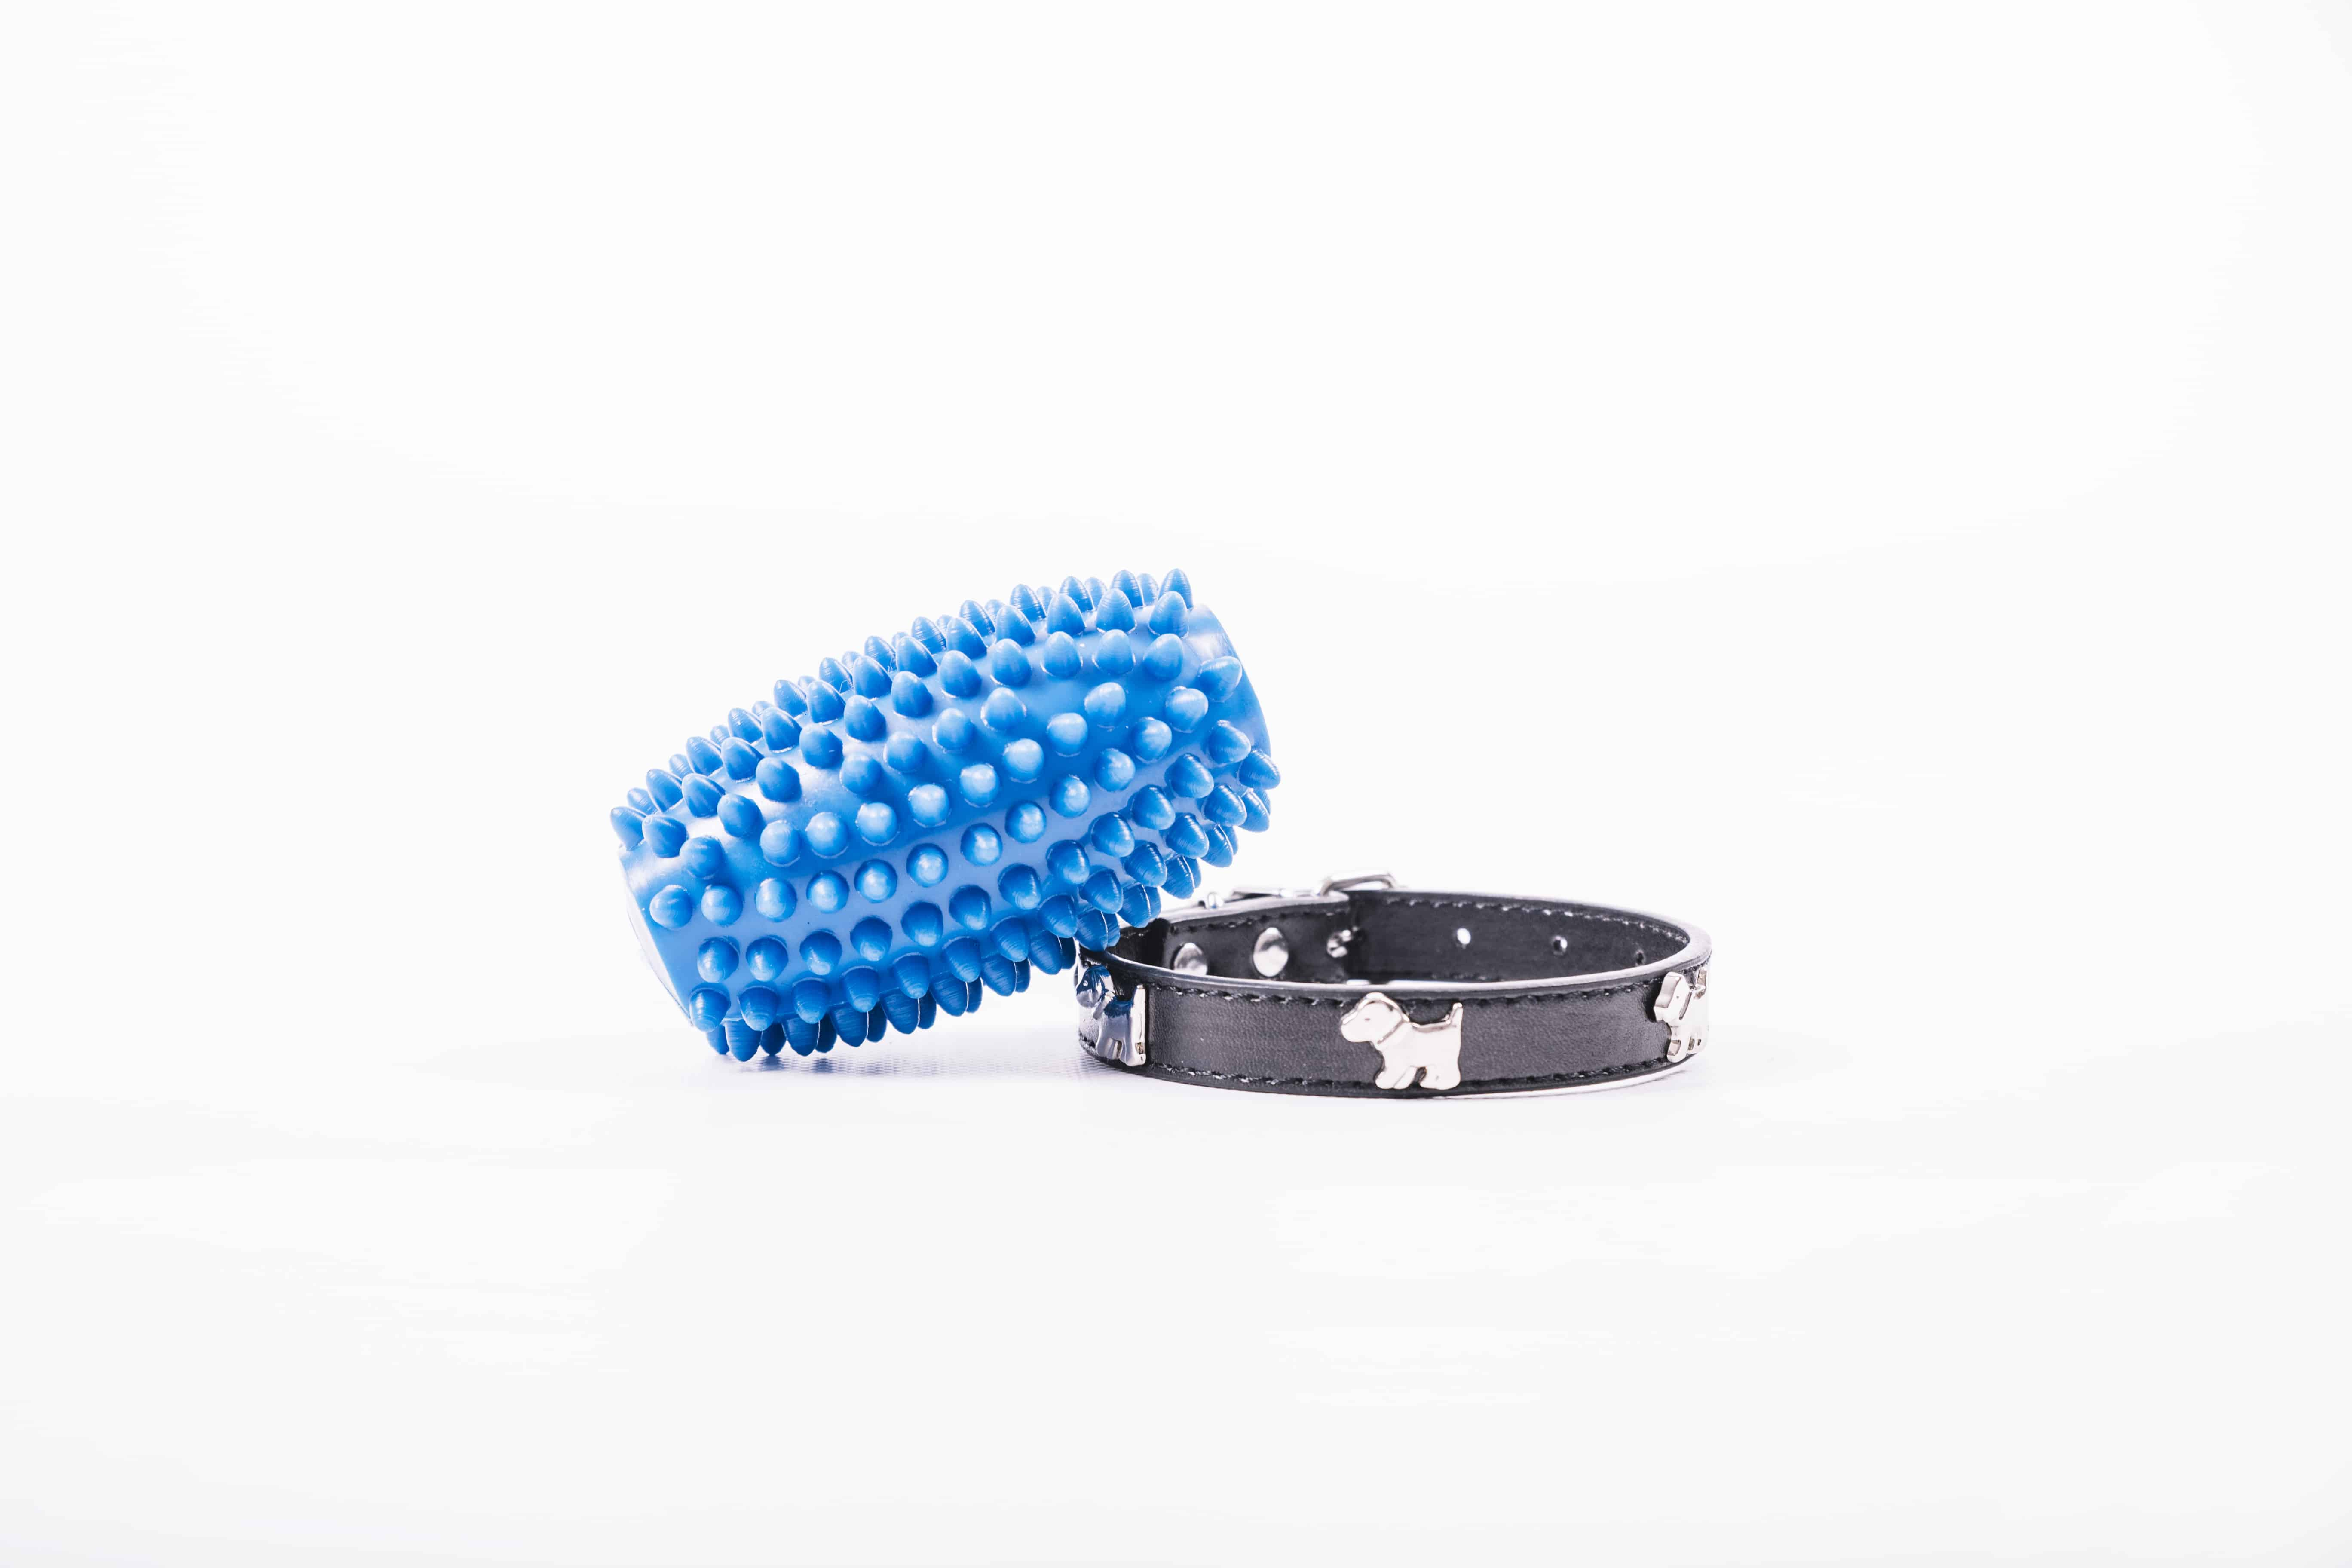 dog collar and toy on white background